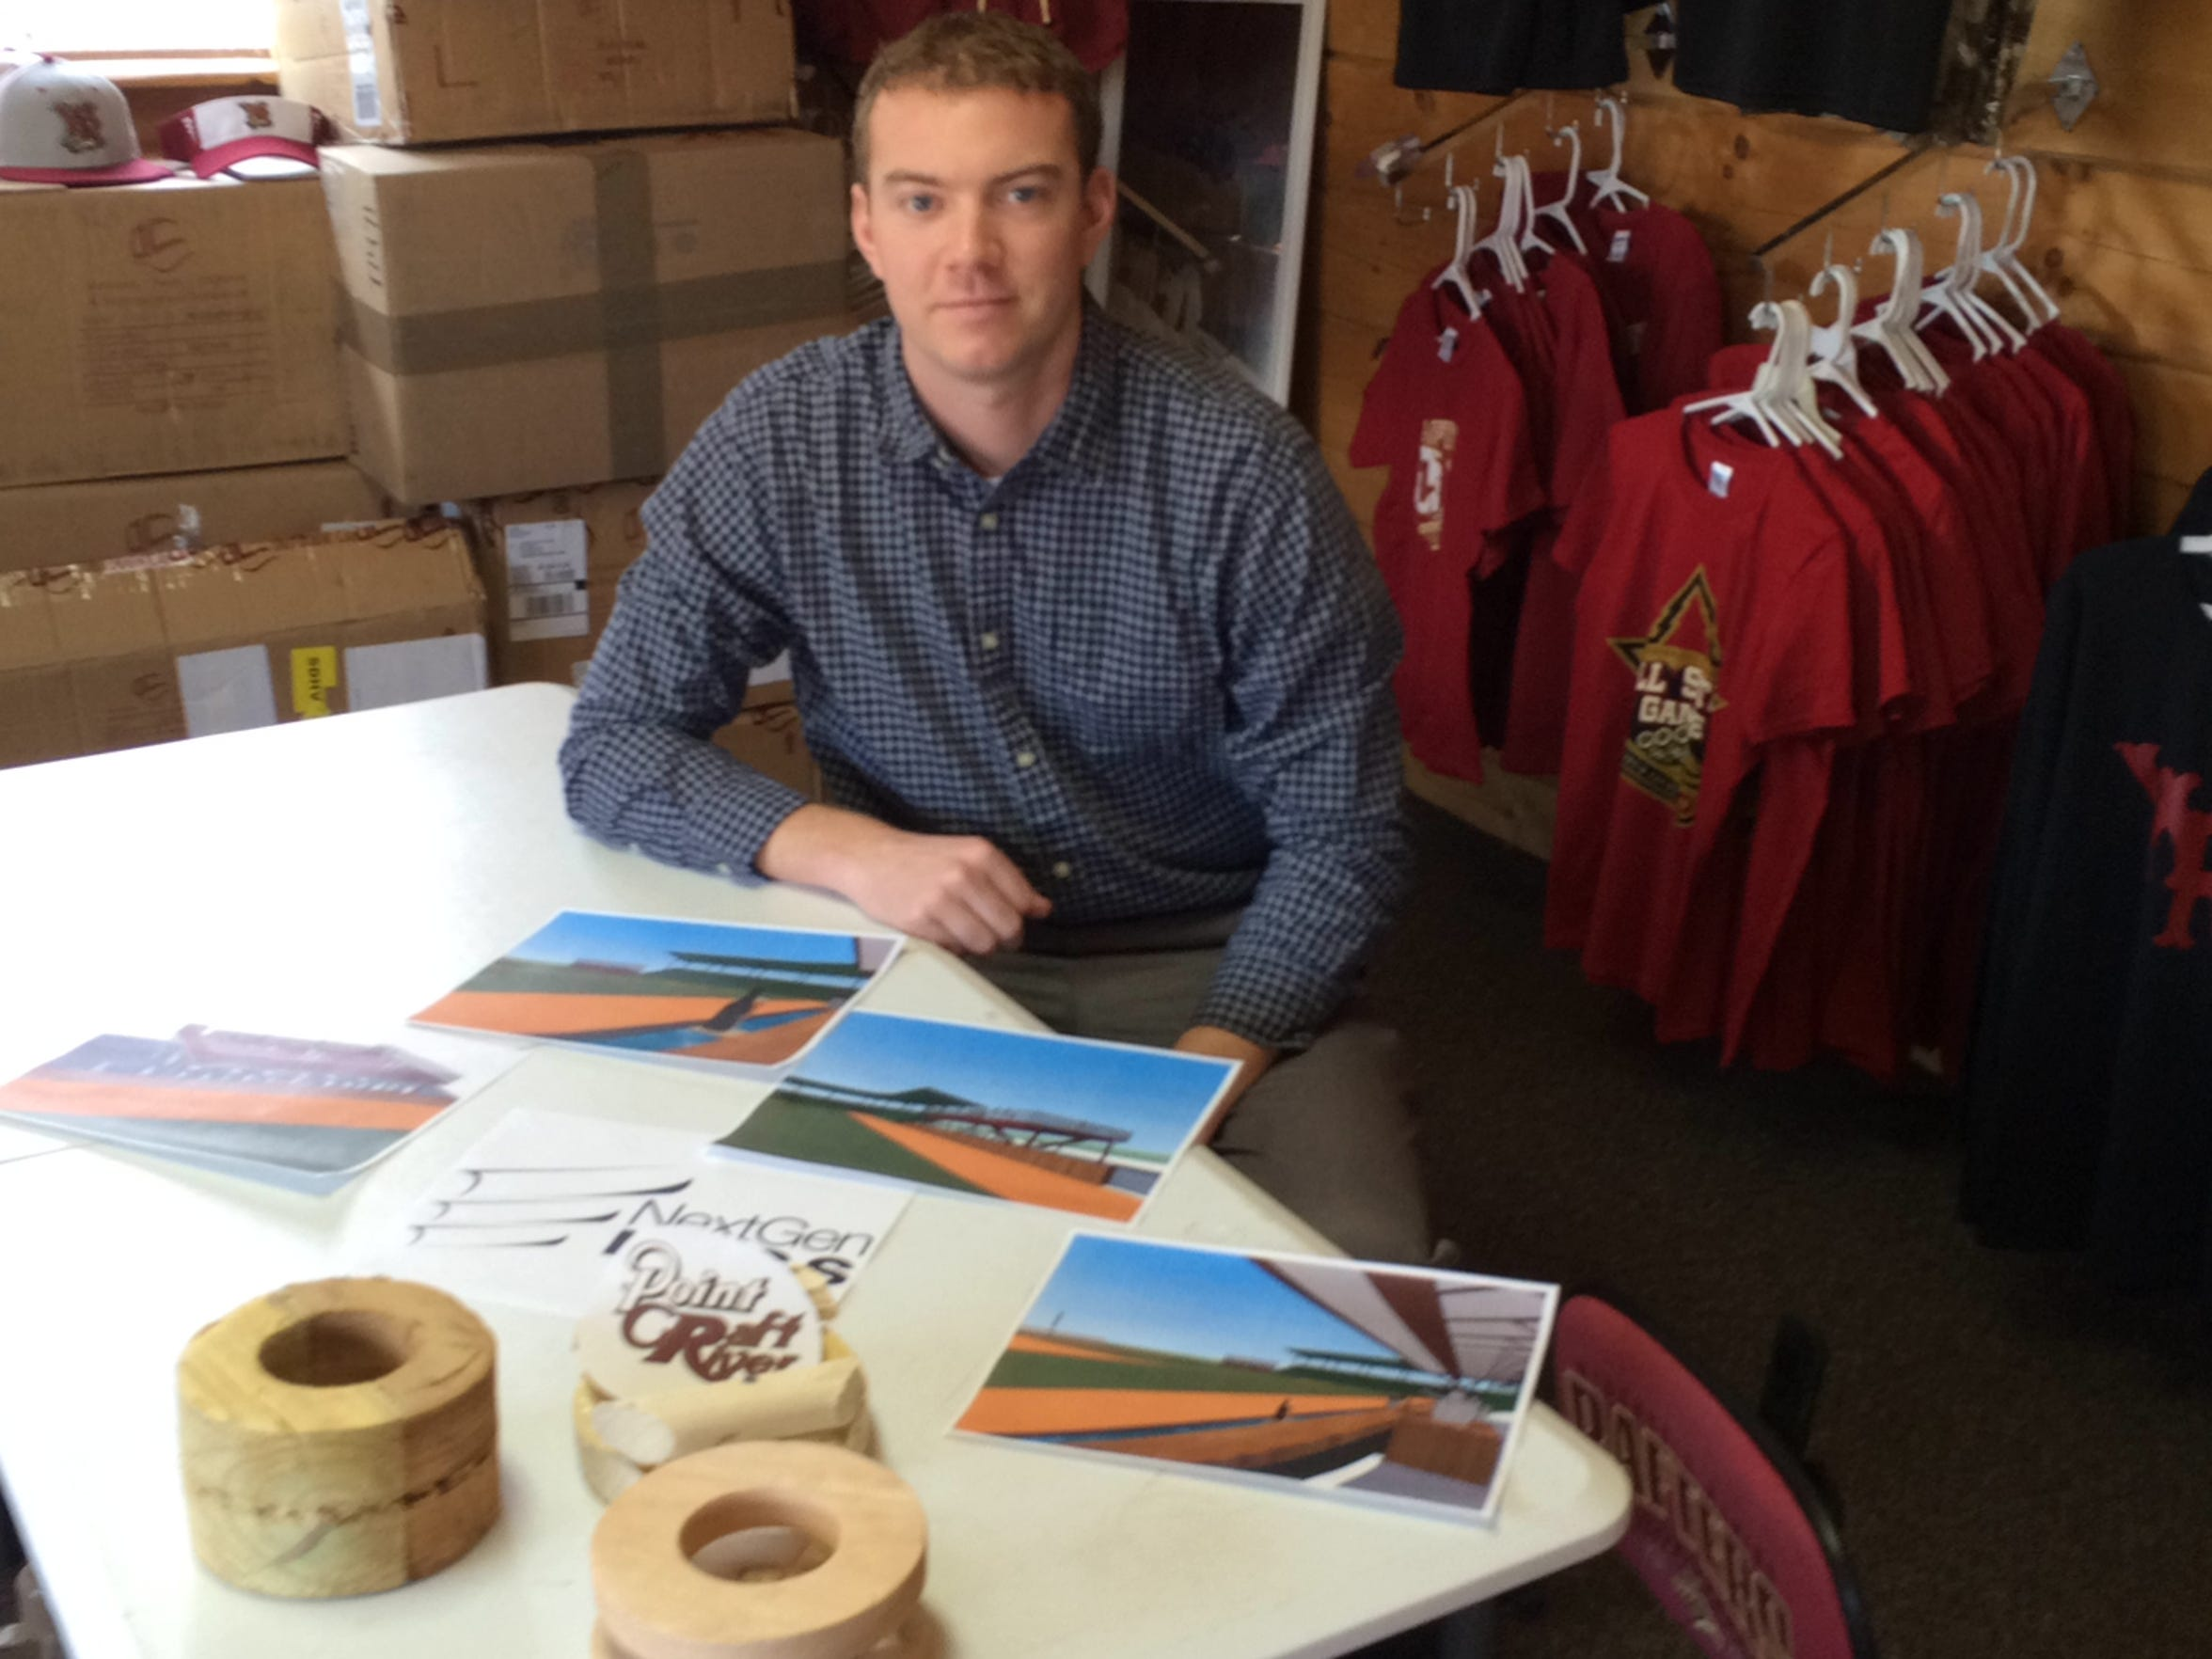 John Fanta, general manager for the Wisconsin Rapids Rafters, shows graphics and log raft prototypes for the new feature, Point Craft River, to be installed at Witter Field.